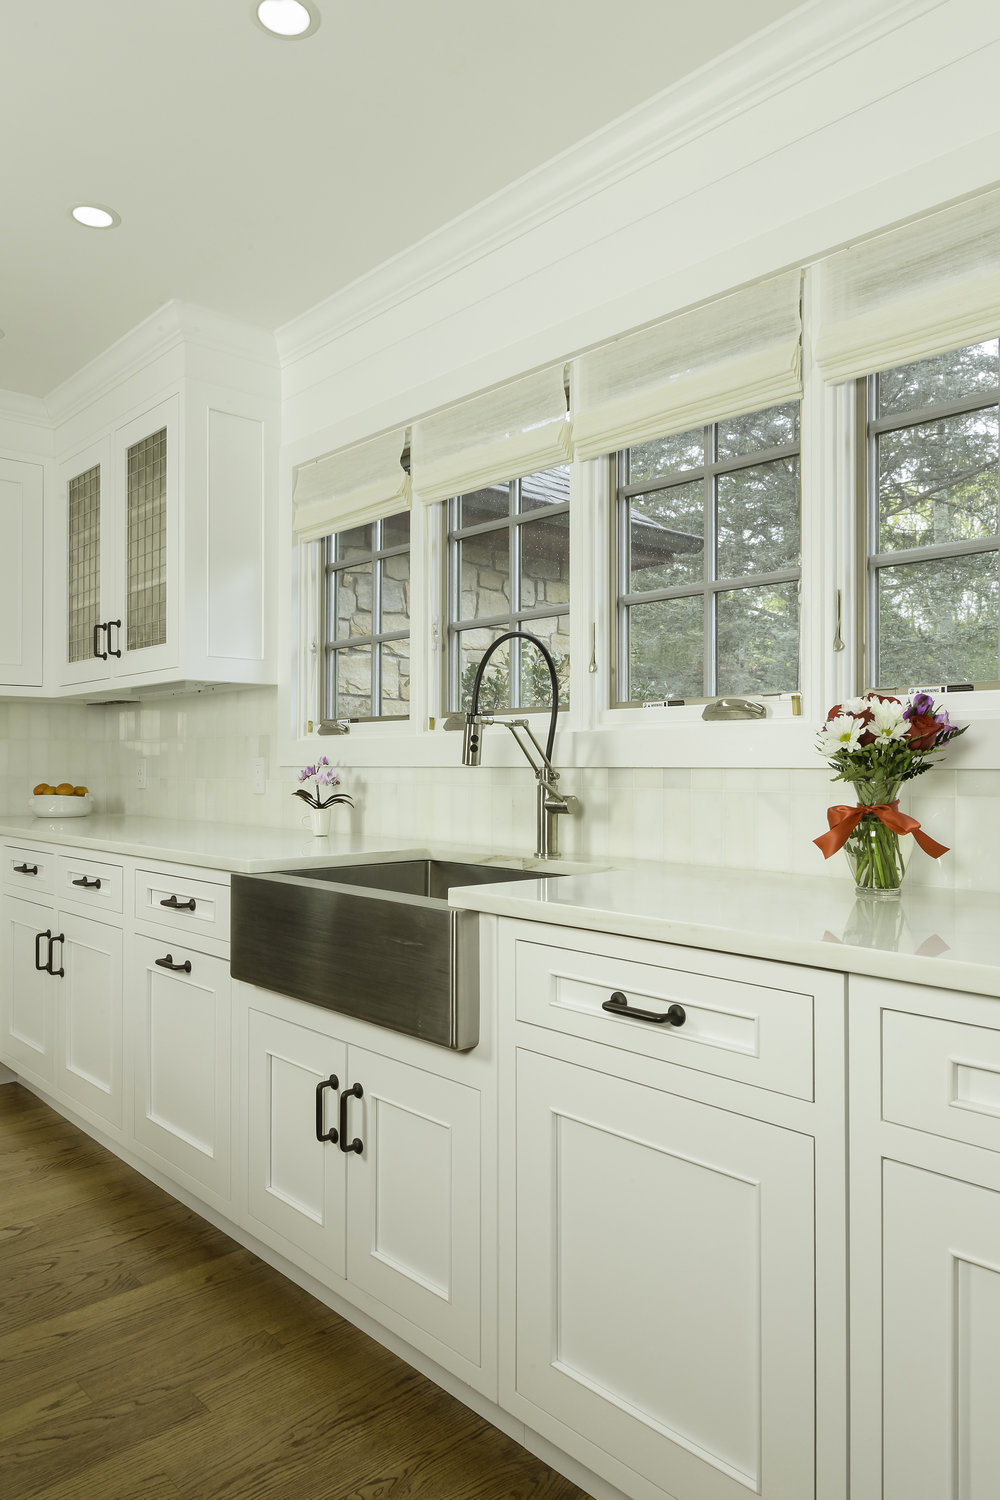 Contemporary style kitchen with four small windows